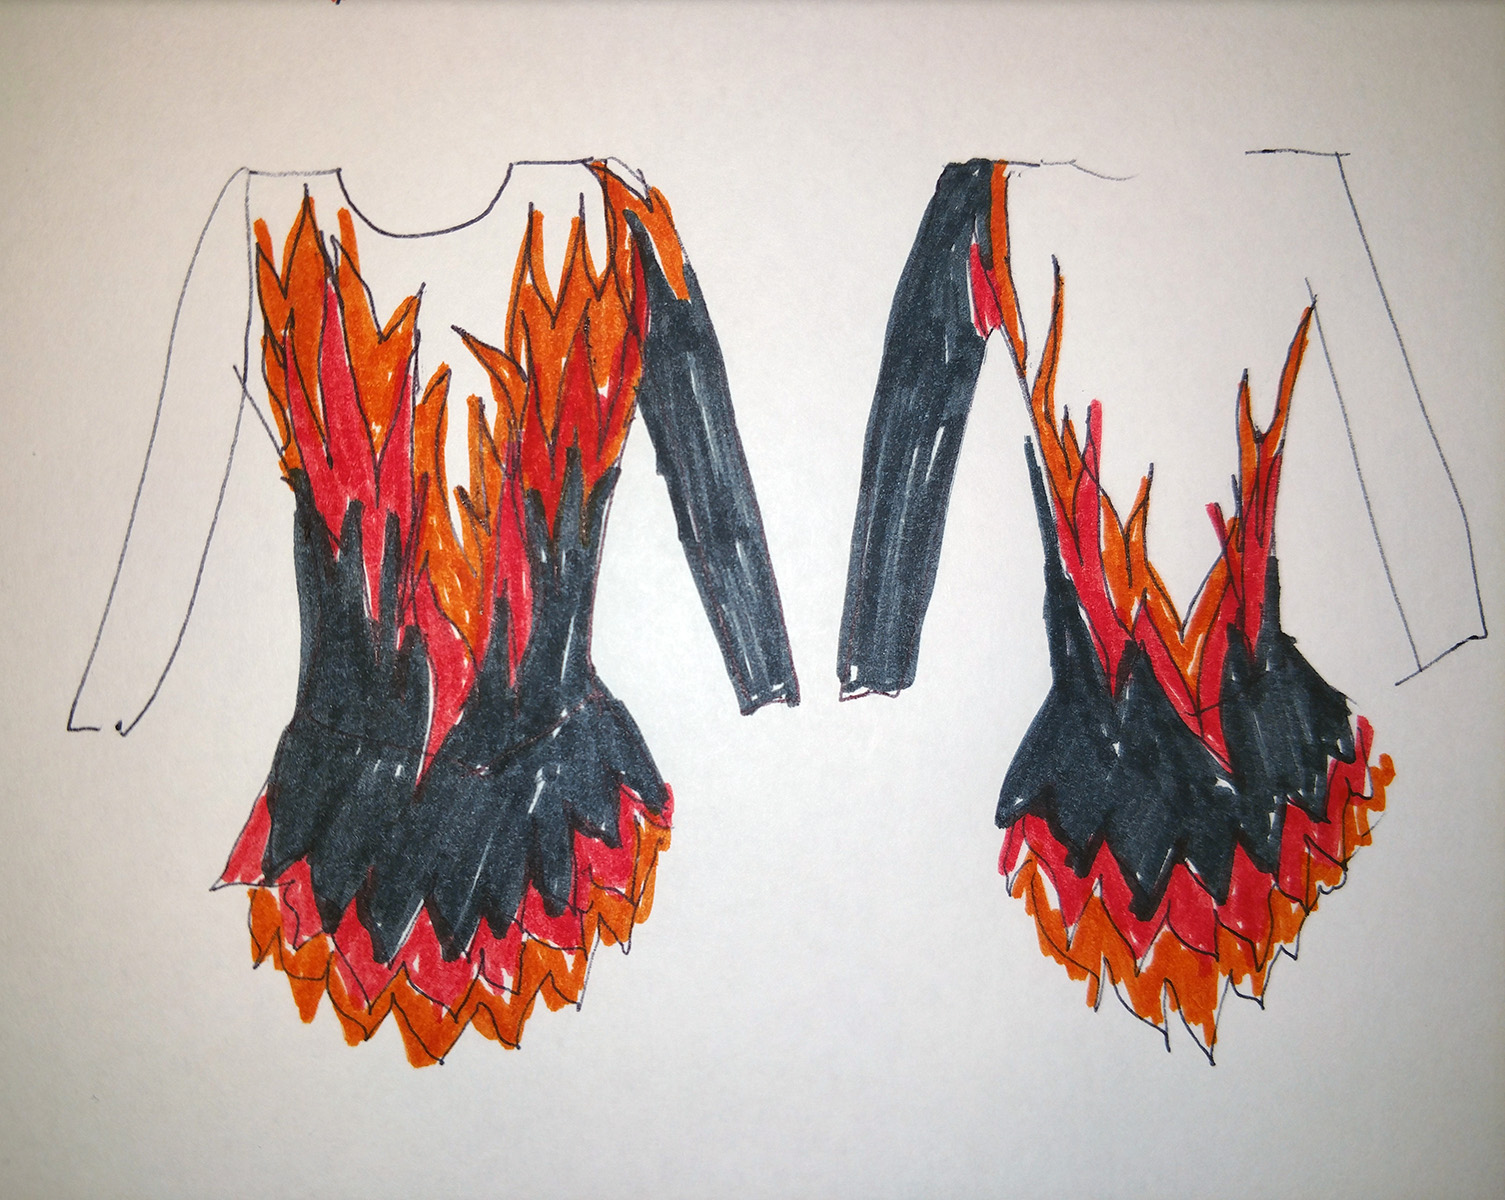 A very rough sketch of the front and back views of a skating dress that is black and beige with a flames design separating the two.